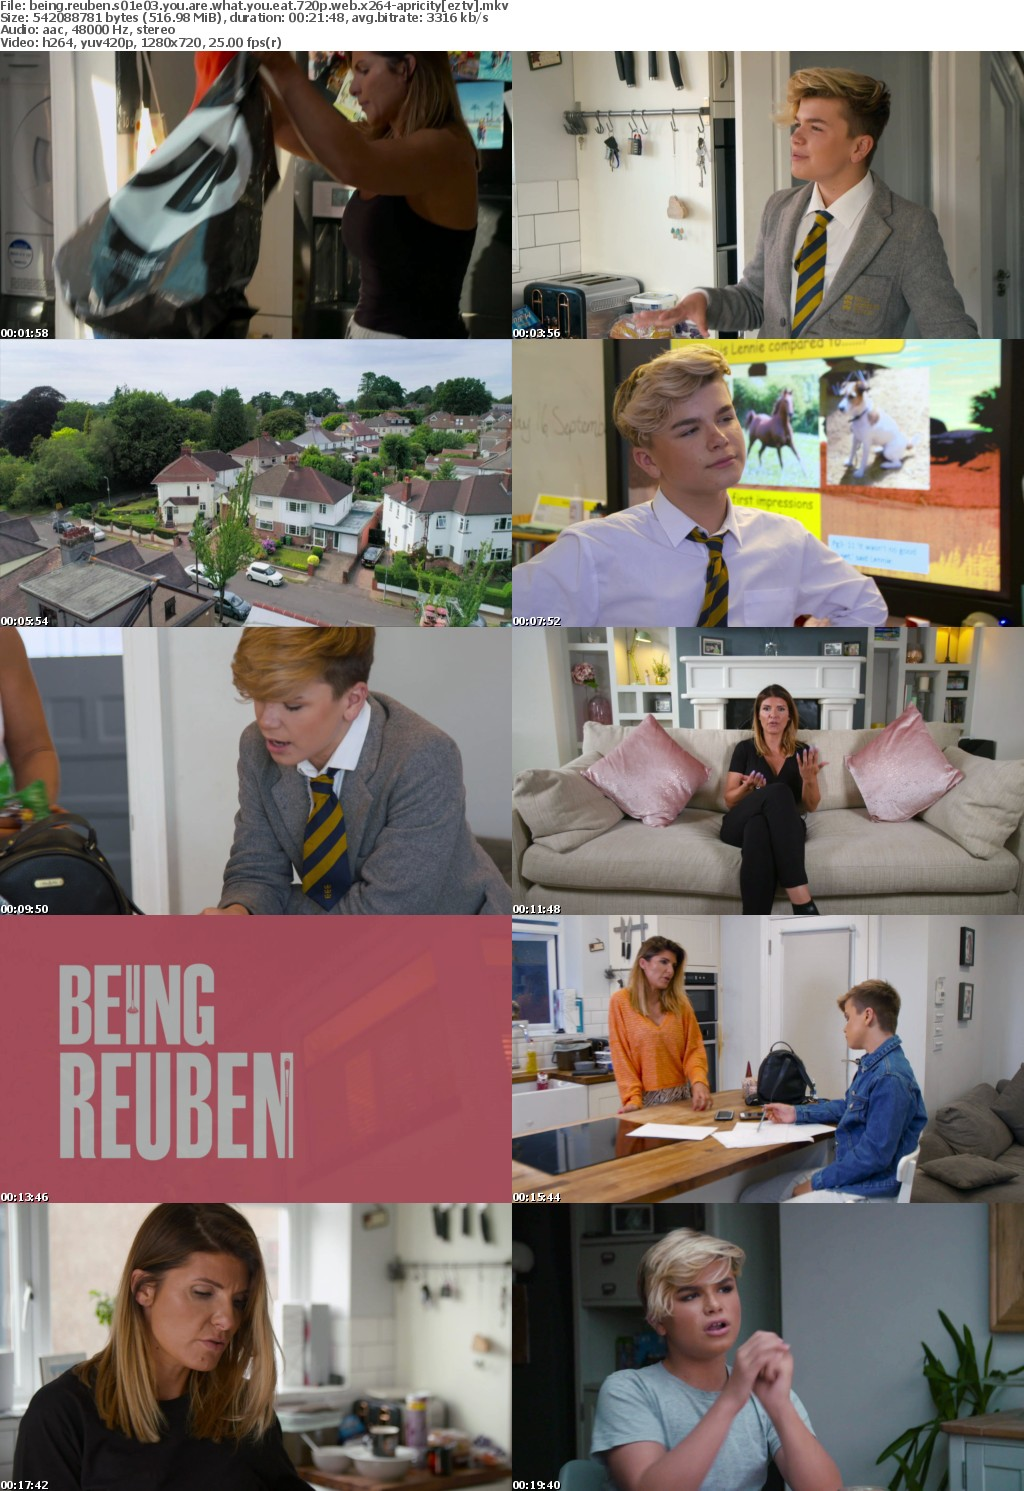 Being Reuben S01E03 You Are What You Eat 720p WEB x264-APRiCiTY